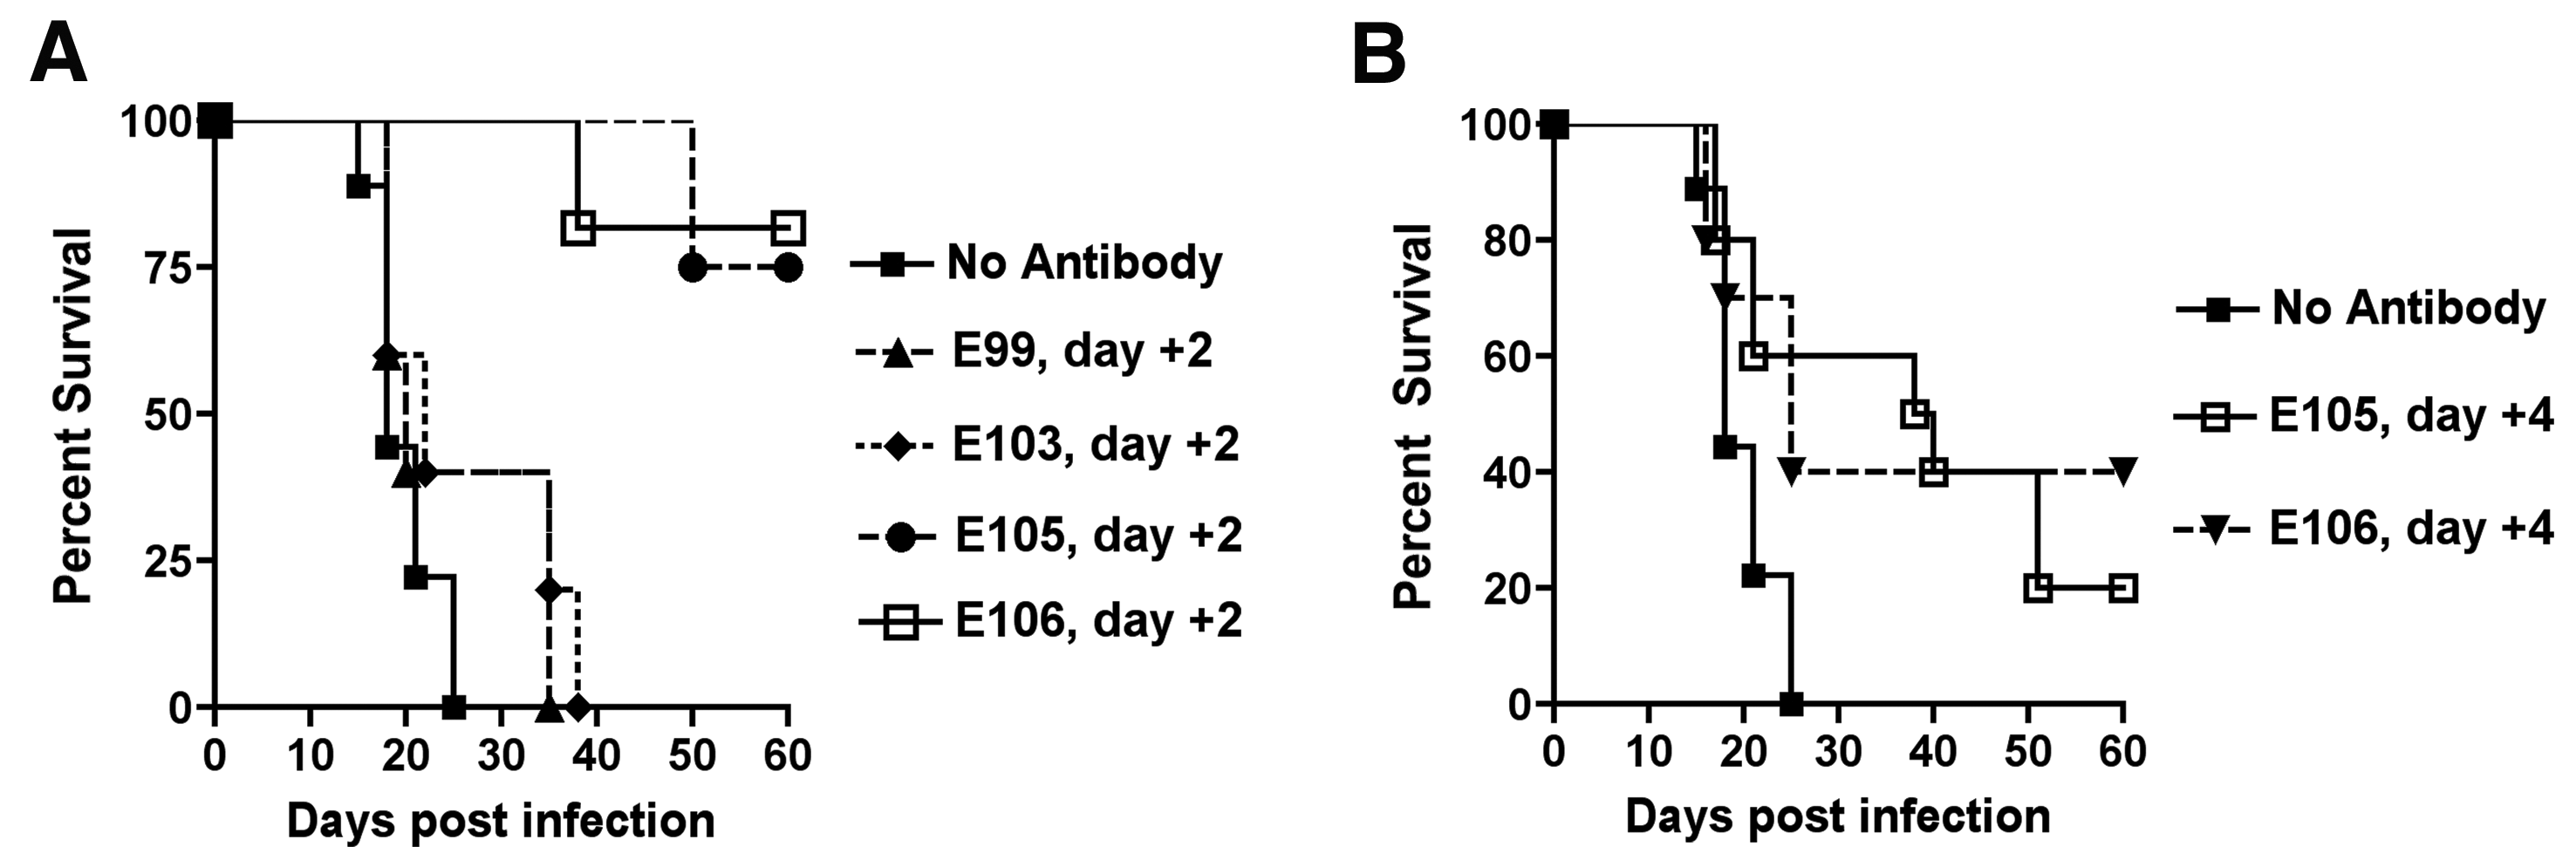 Therapeutic efficacy of strongly neutralizing antibodies in mice after DENV-1 infection.